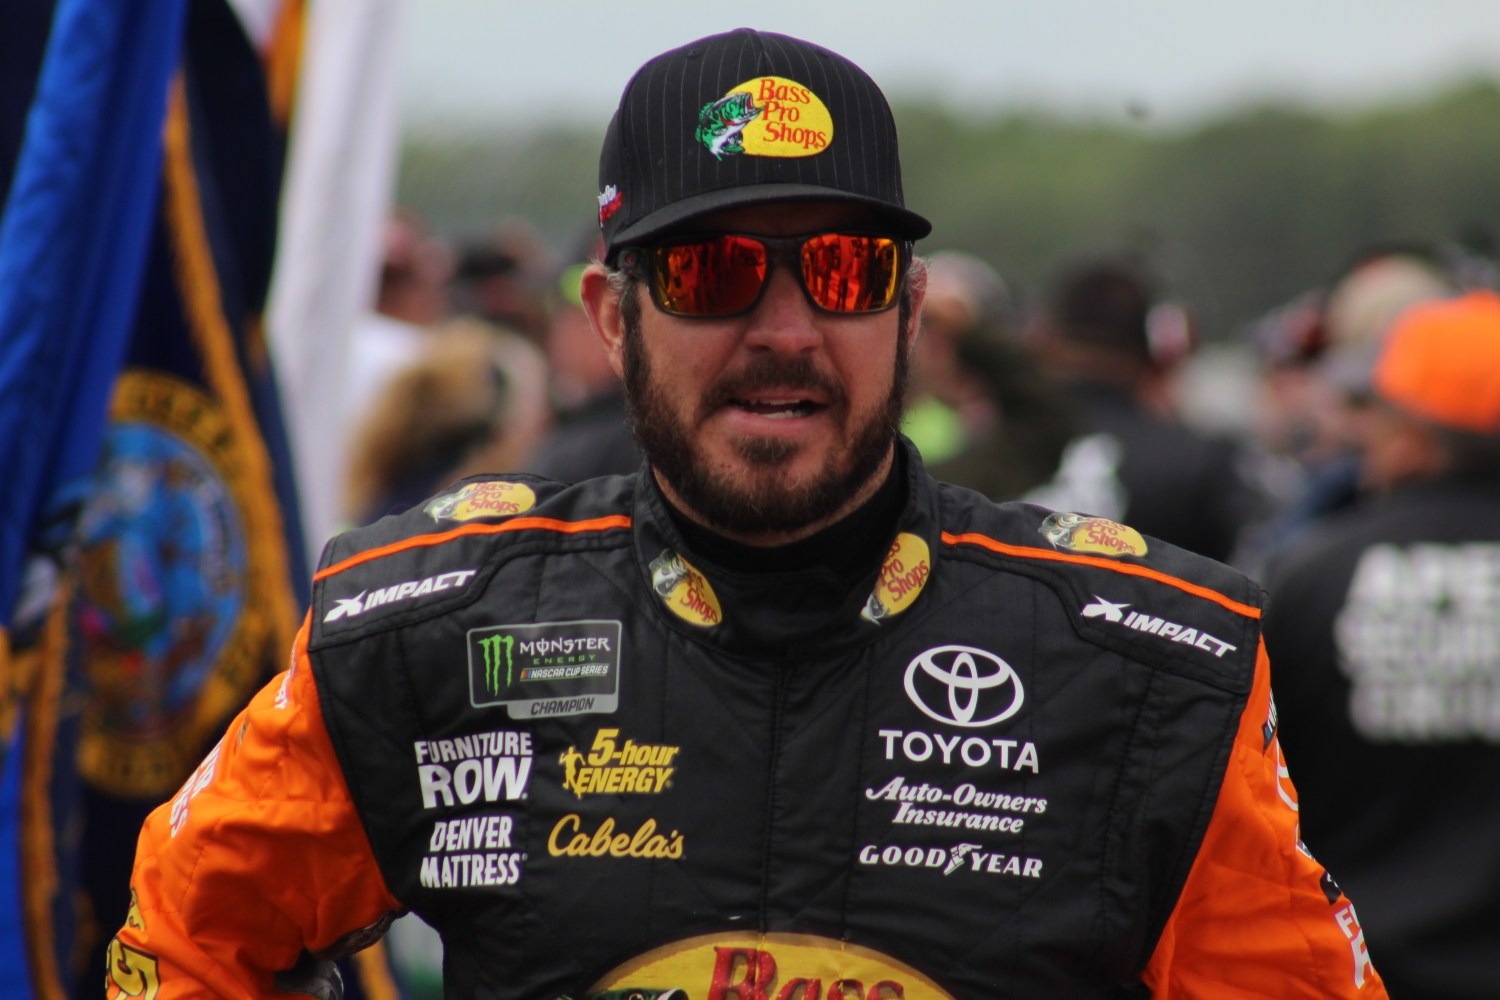 Martin Truex Jr. walks during driver introductions for the 2018 Pocono 400. (Tyler Head | The Racing Experts)